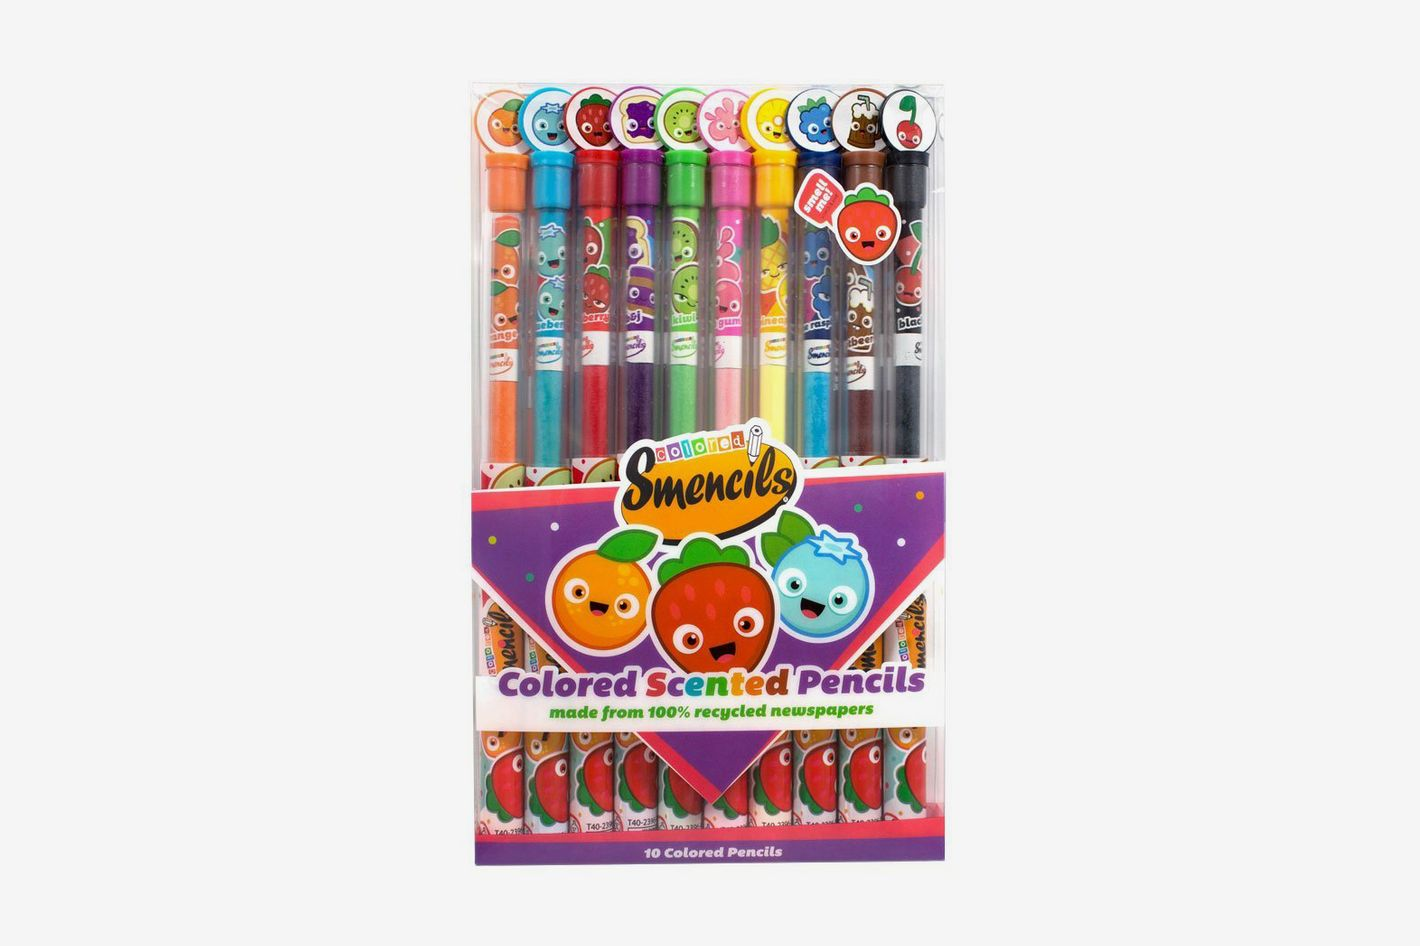 Scentco Colored Smencils 10-Pack of Scented Coloring Pencils